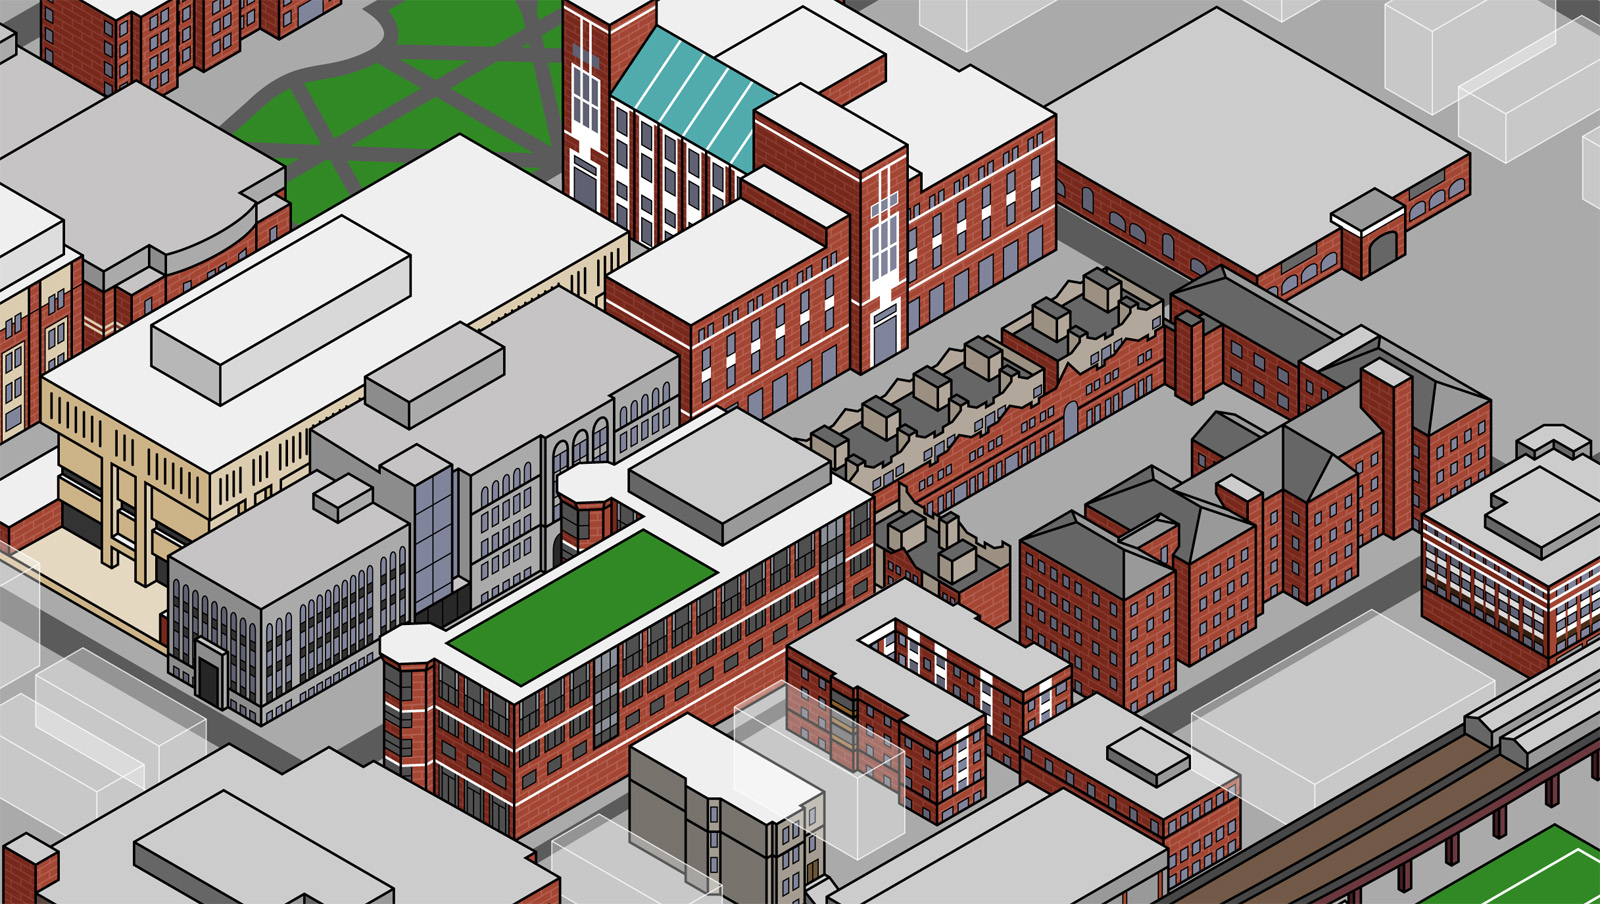 depaul-campus-map-detail-in.jpg